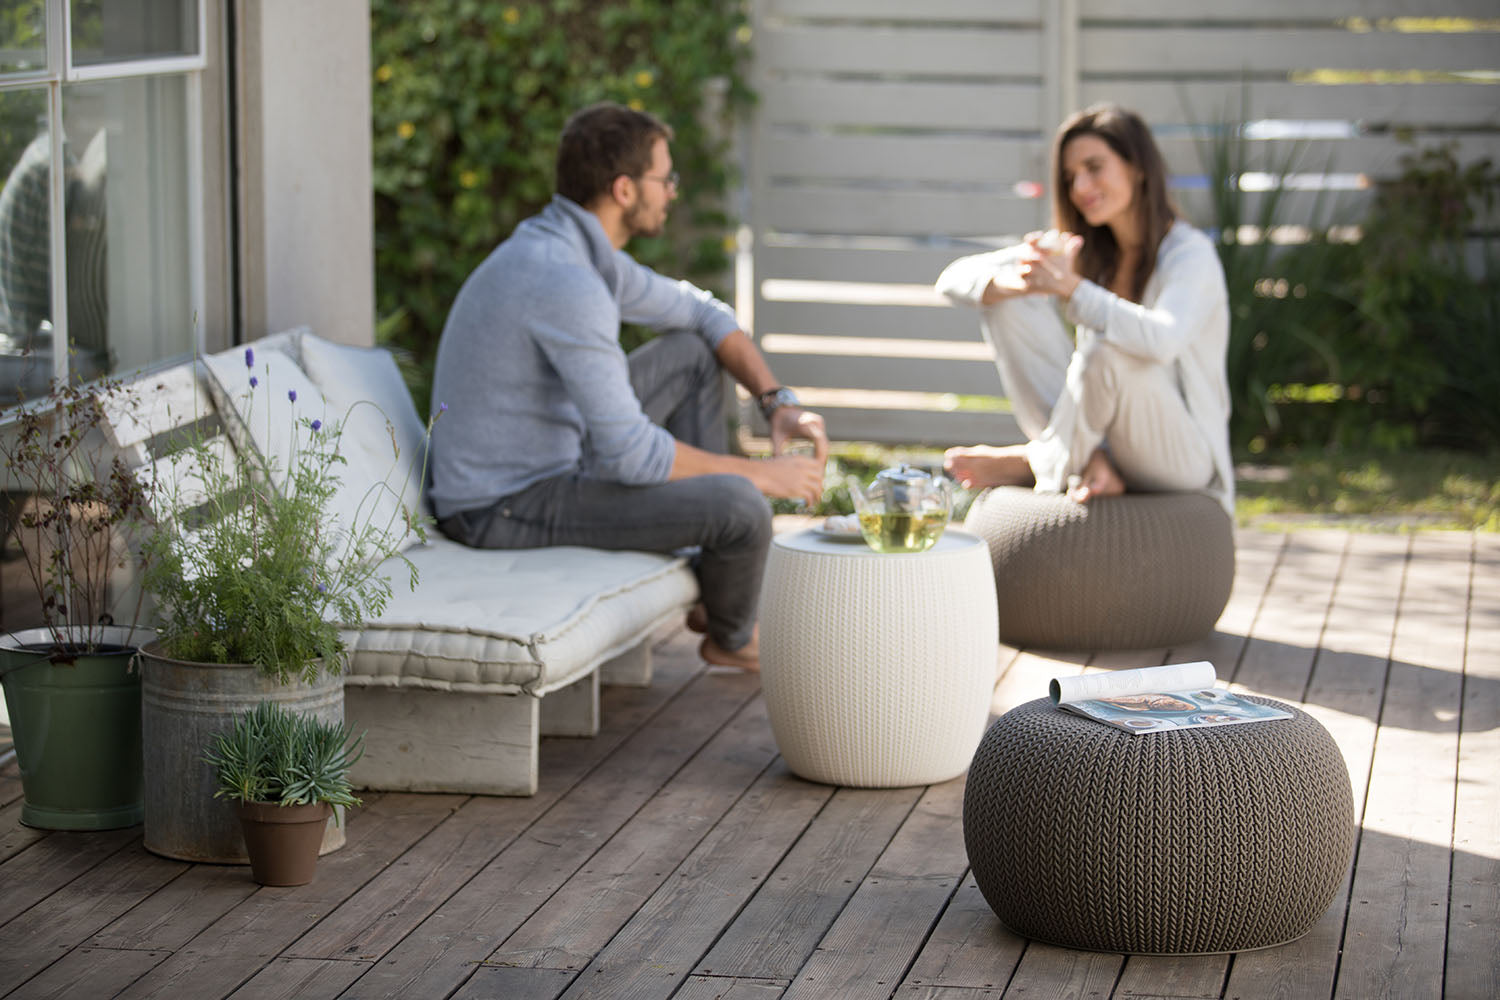 Cozy Urban Set, Resin Outdoor Patio Furniture, Knit Pattern